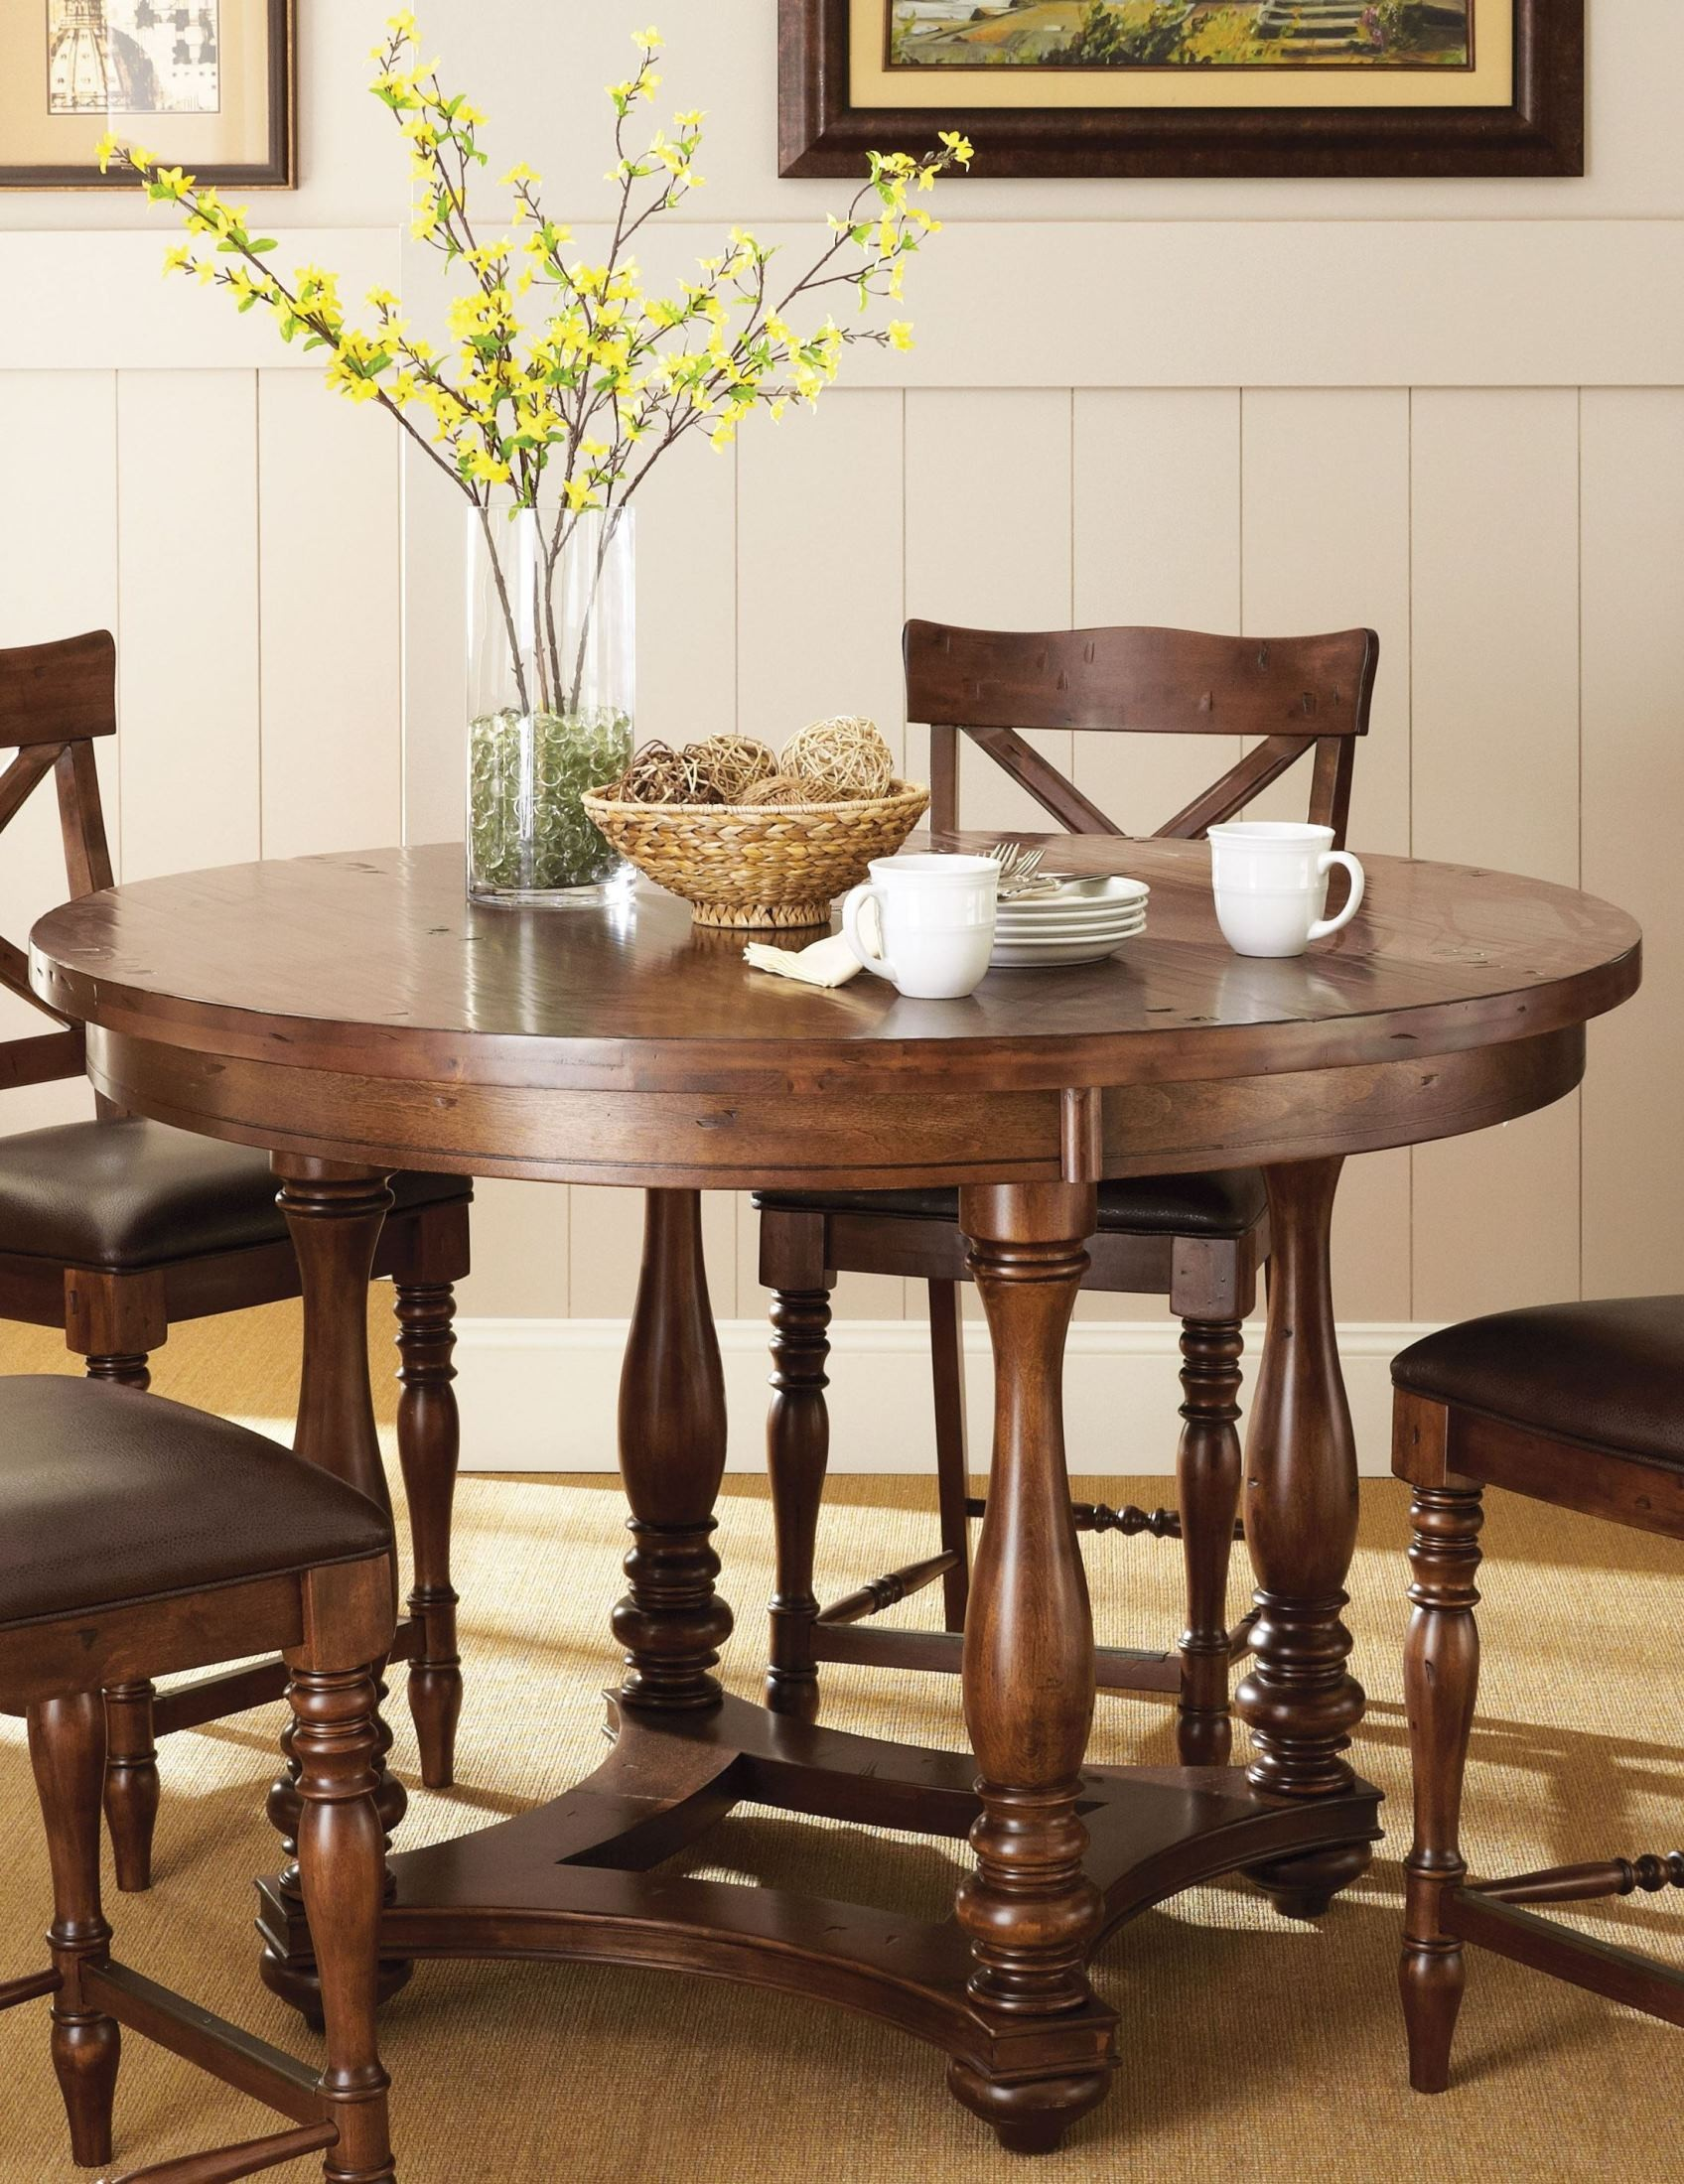 wyndham medium cherry counter height dining table from steve silver wd5454pt coleman furniture. Black Bedroom Furniture Sets. Home Design Ideas